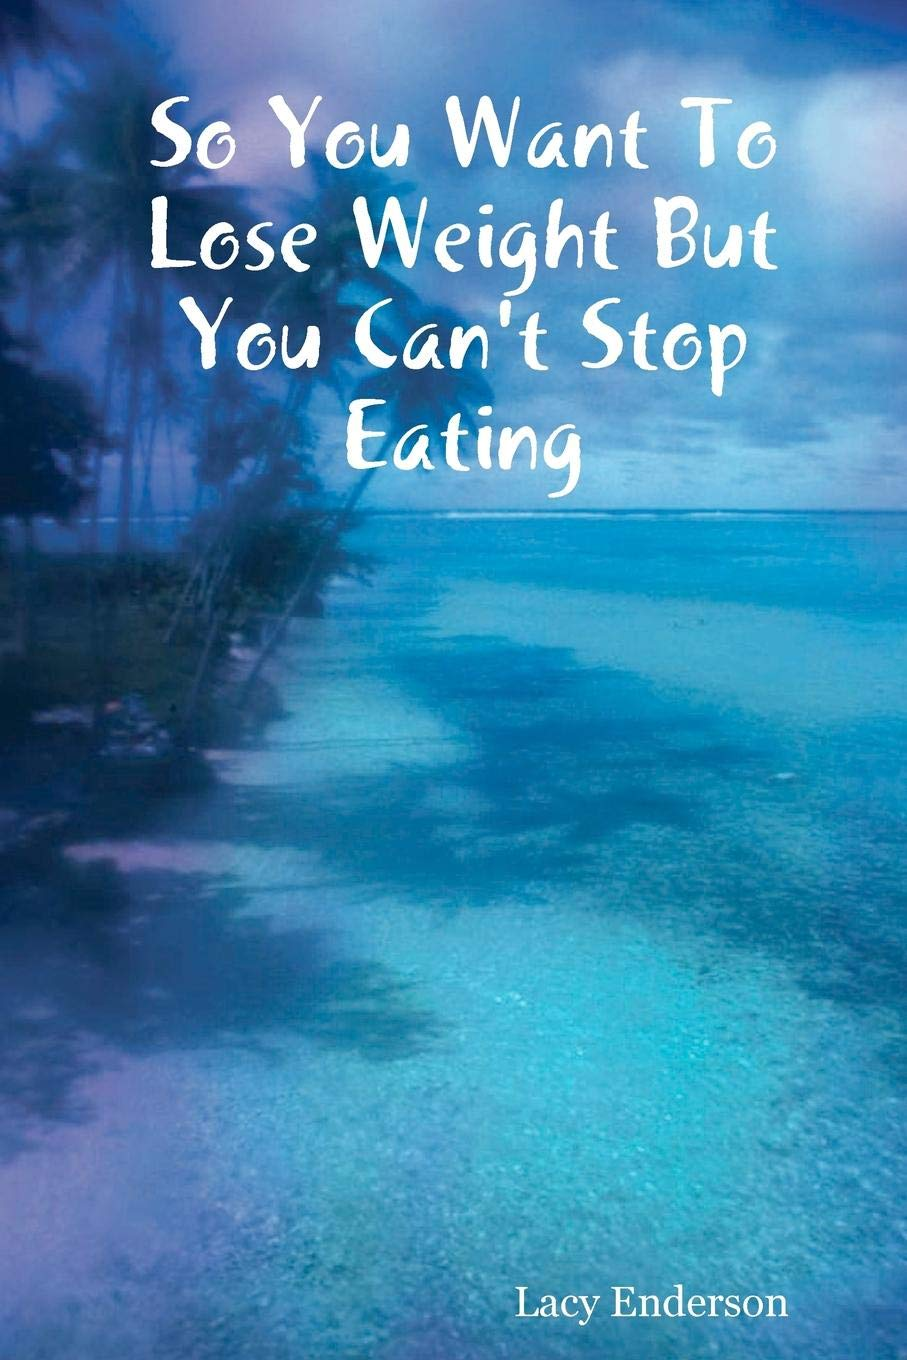 cant stop eating help lose weight